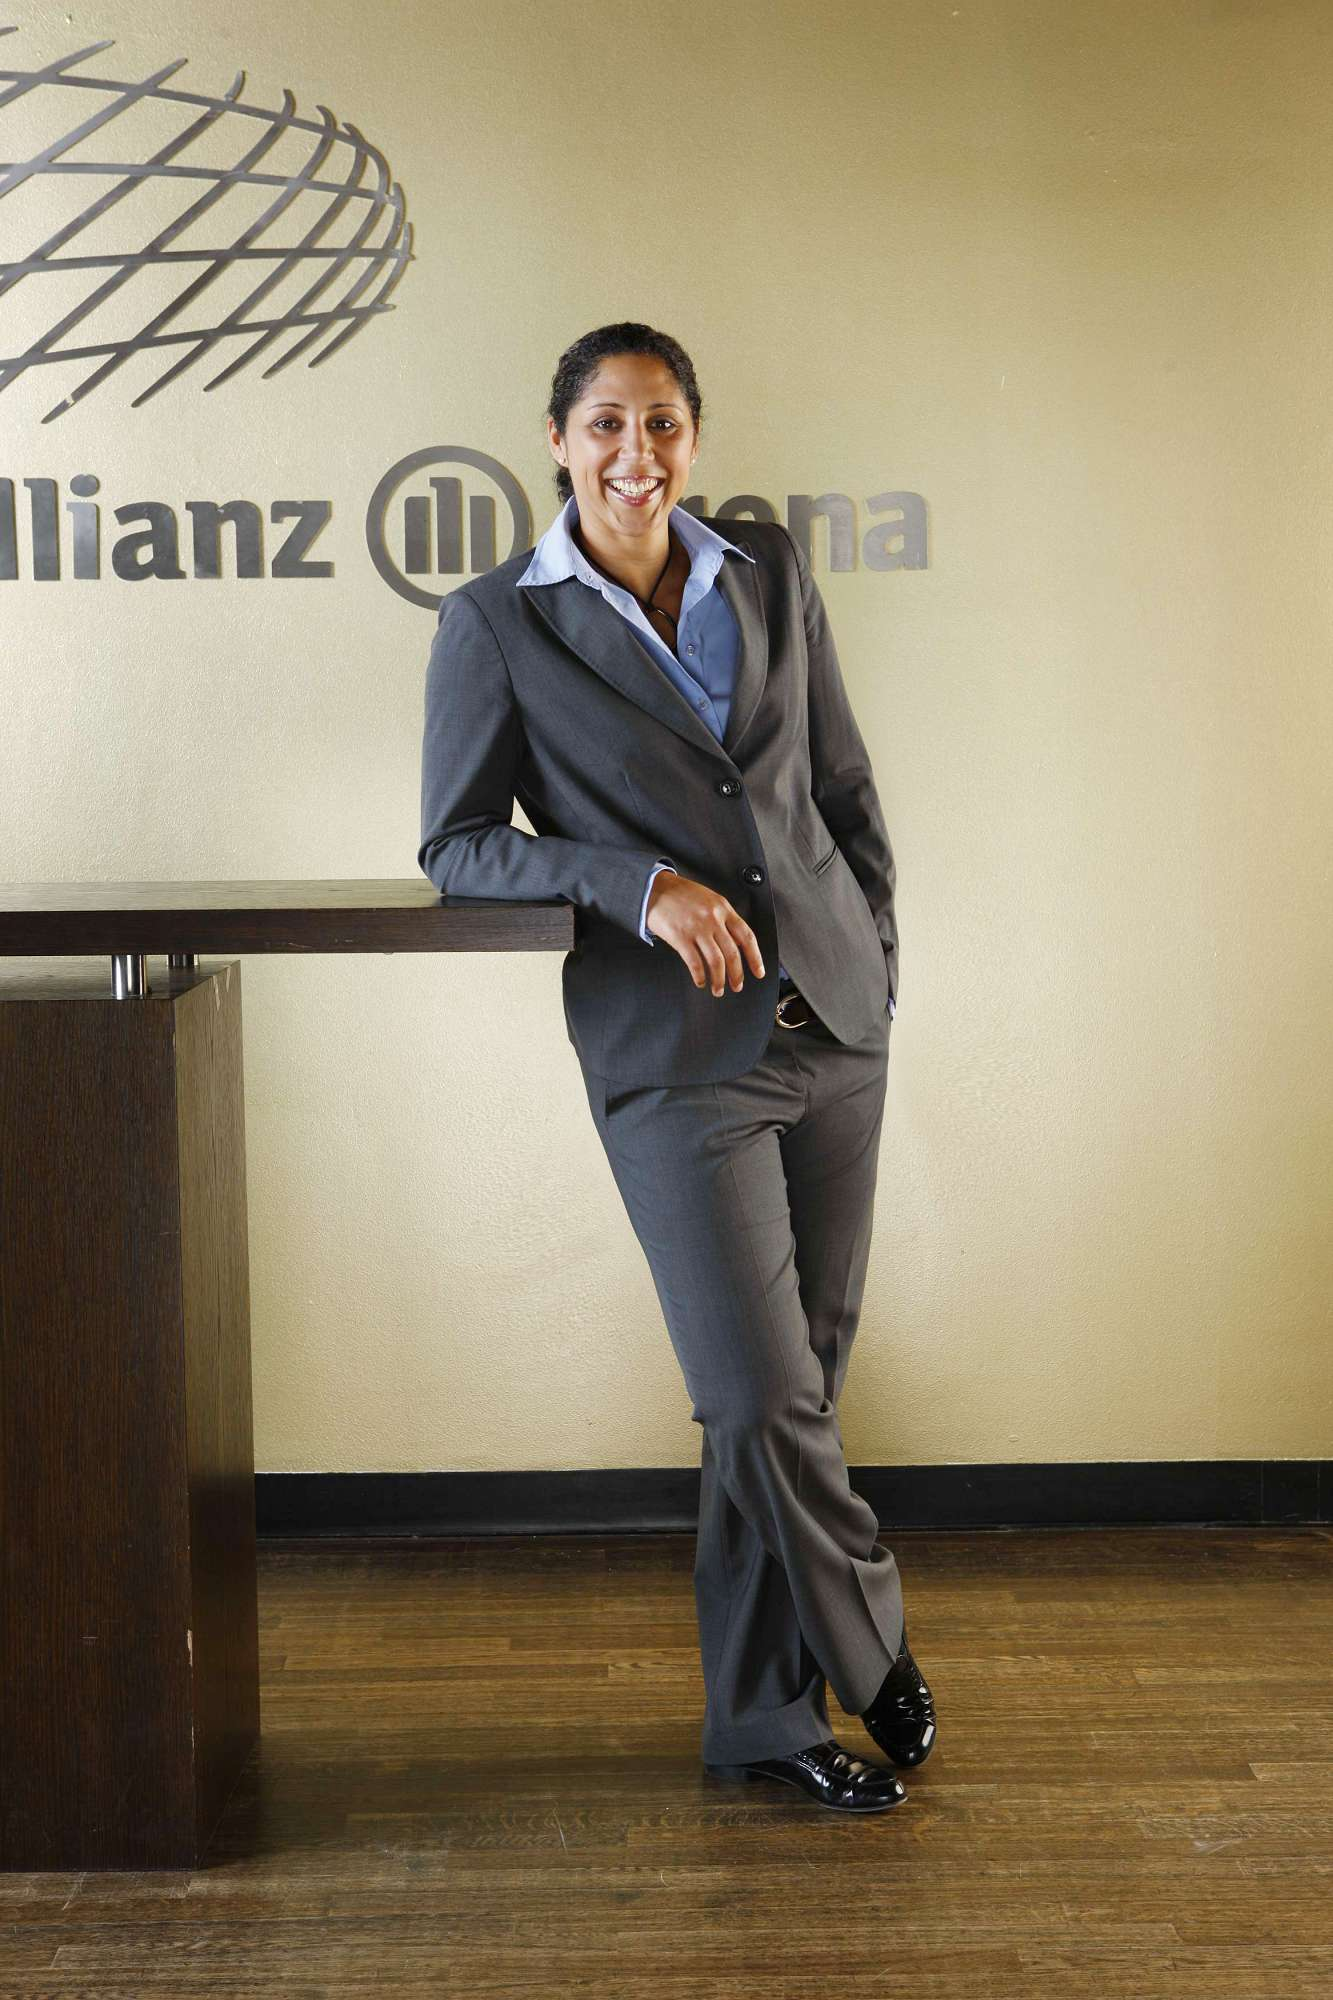 Allianz | Steffi Jones